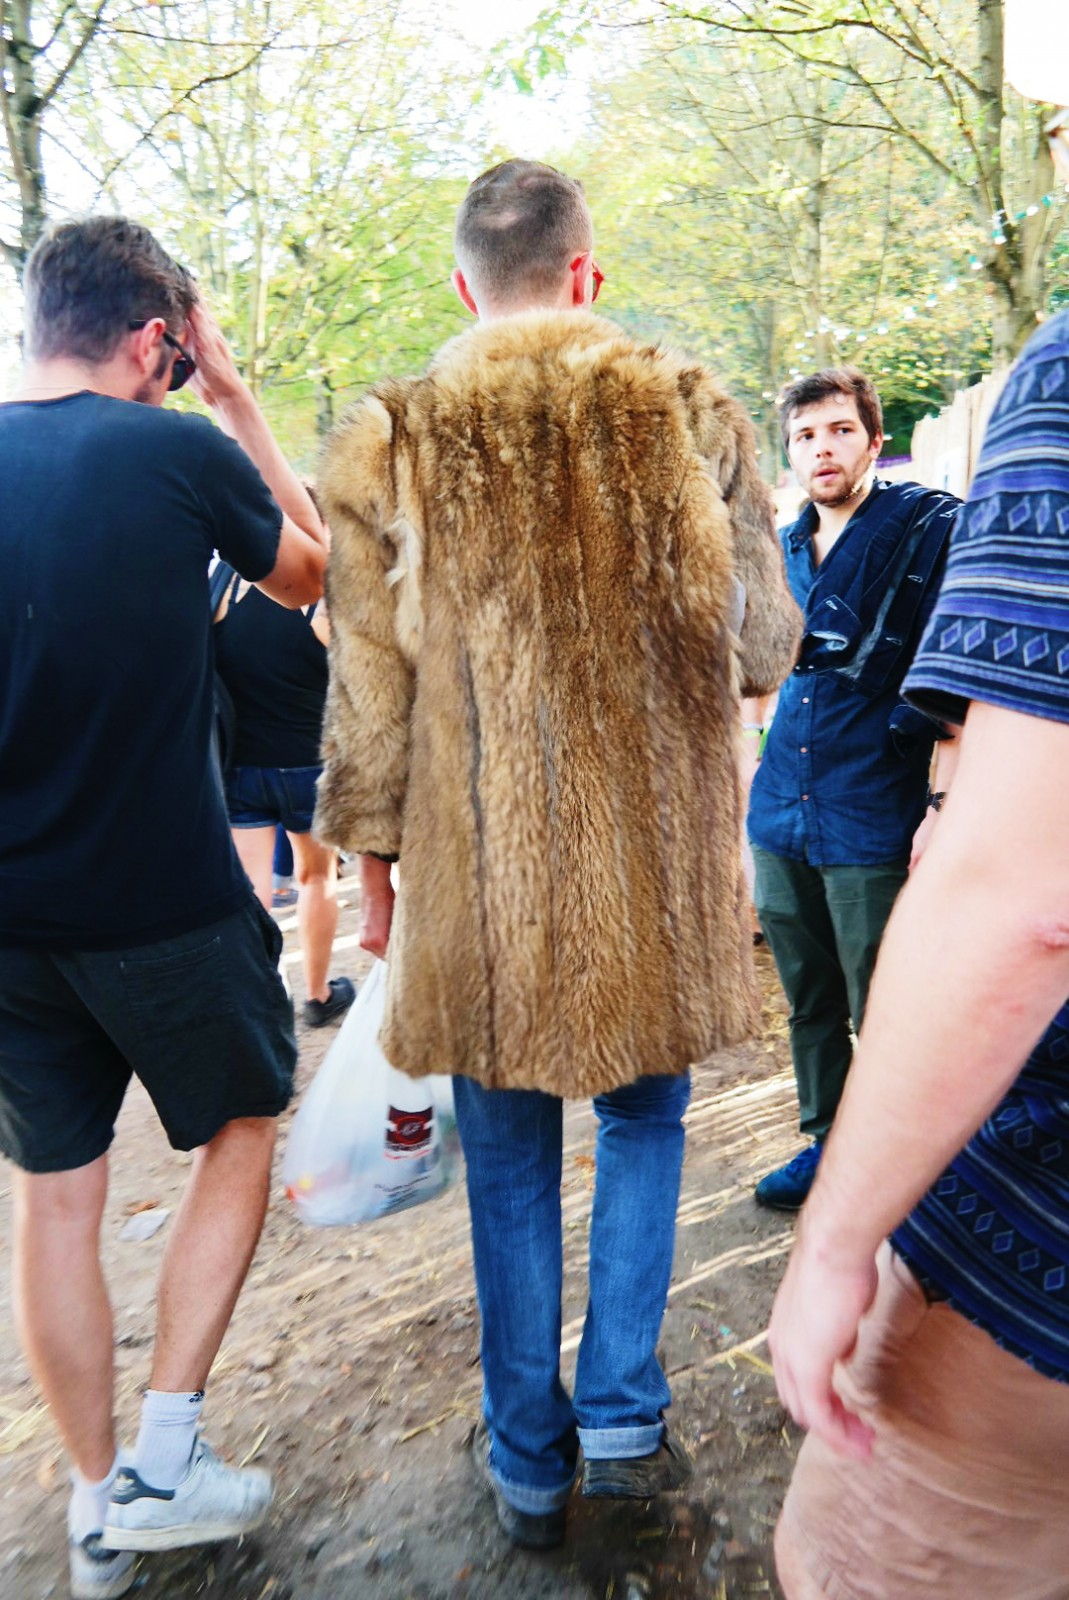 Festivalier-en-manteau-d-hiver-Festival-Rock-en-Seine-2015-menswear-fashion-photo-by-united-states-of-paris-blog